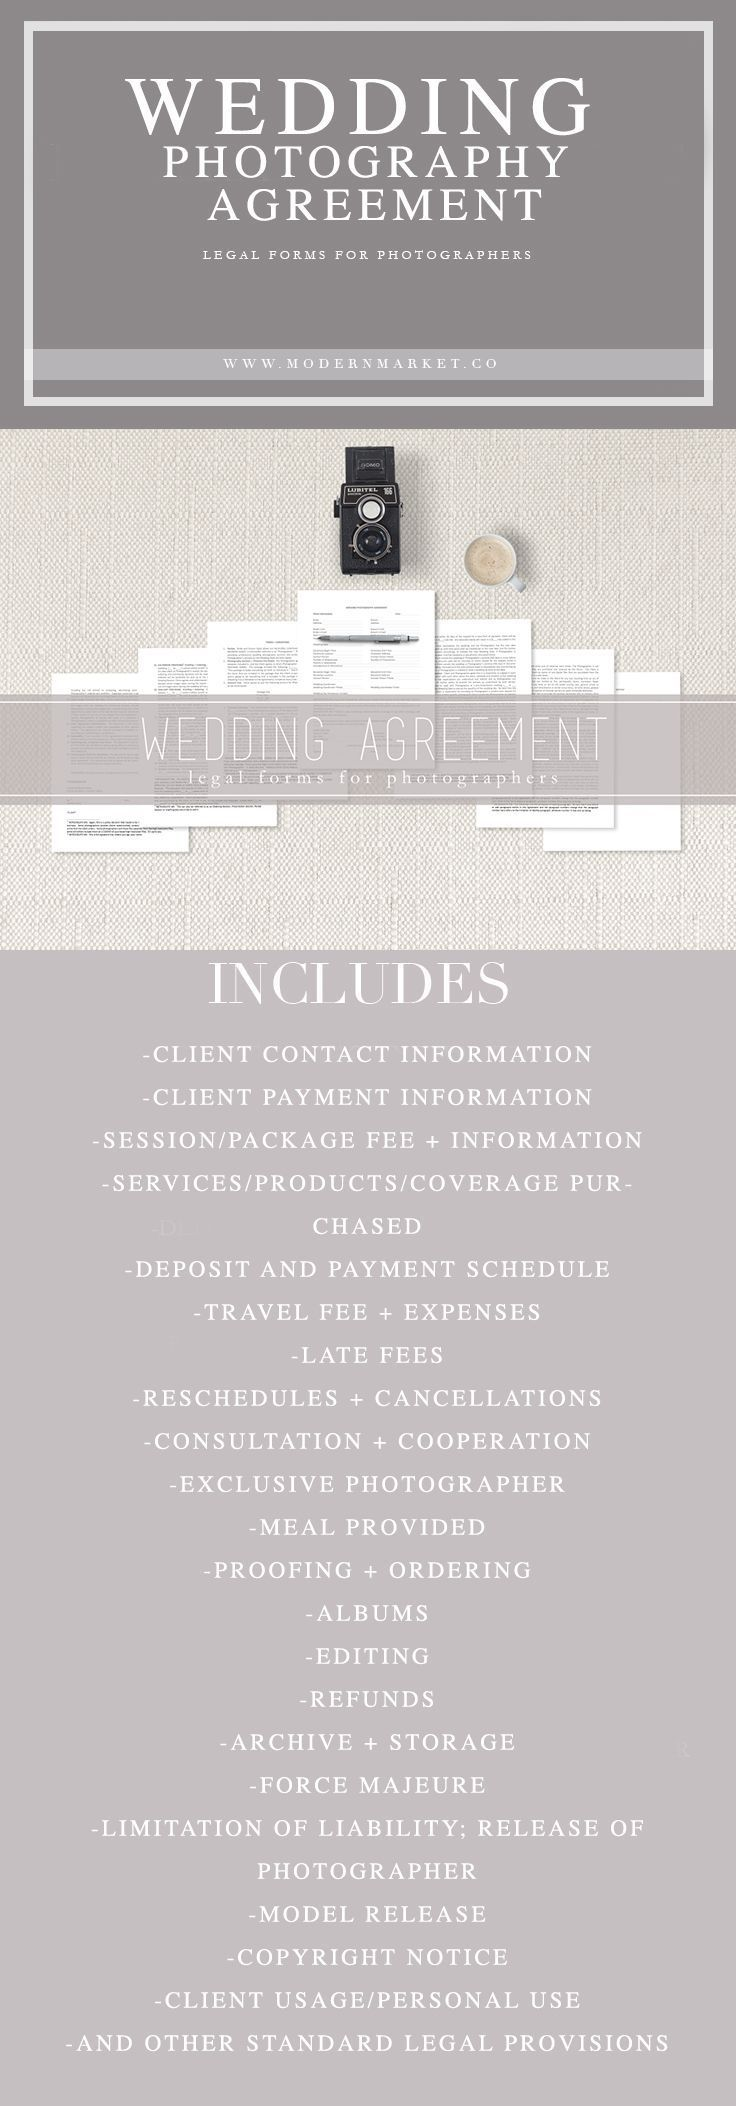 WEDDING PHOTOGRAPHERS - If you shoot weddings you need this! A easy to understand, simple to customize wedding contract. View our whole line of legal forms for photographers. #weddingphotography